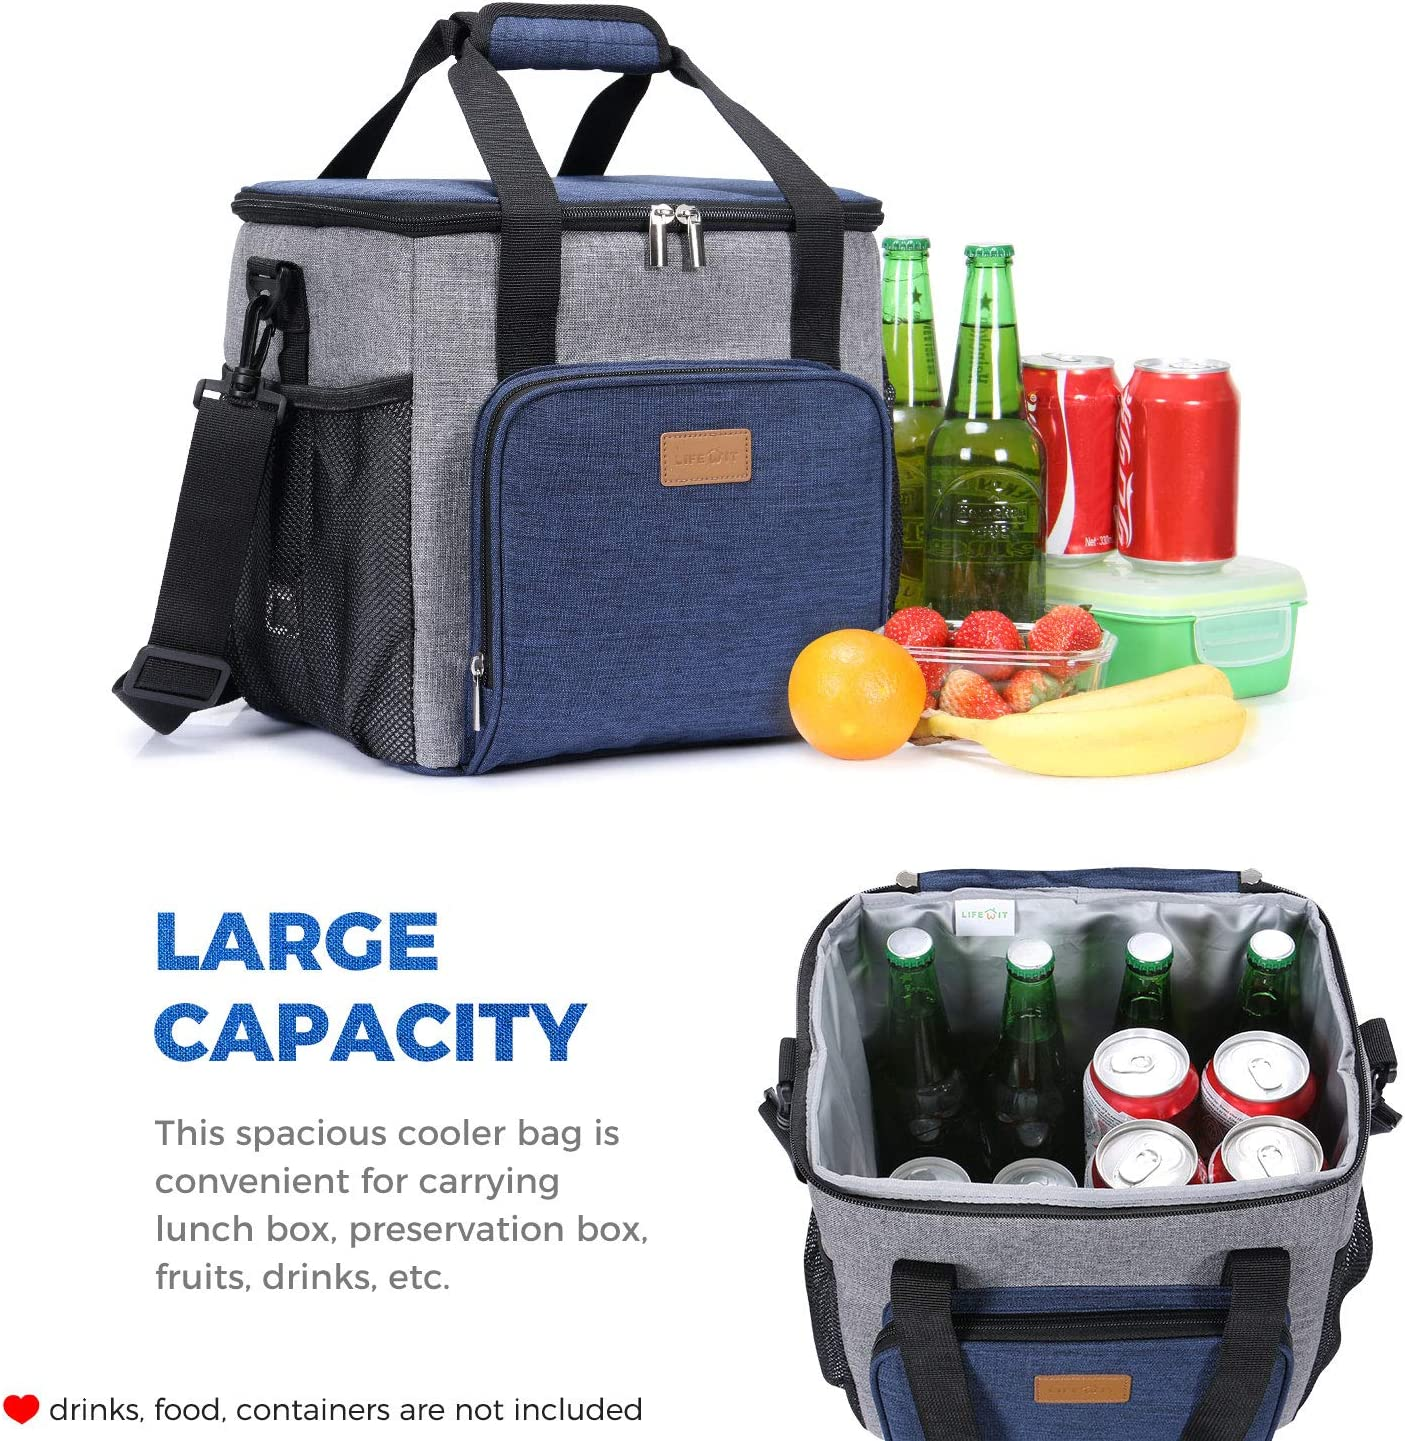 Large Lunch Box Bag for School//Work Lifewit Insulated Cooler Bag Soft Cooling Box for Men Adults with 2 Ice Packs 24-Can 17L Grey